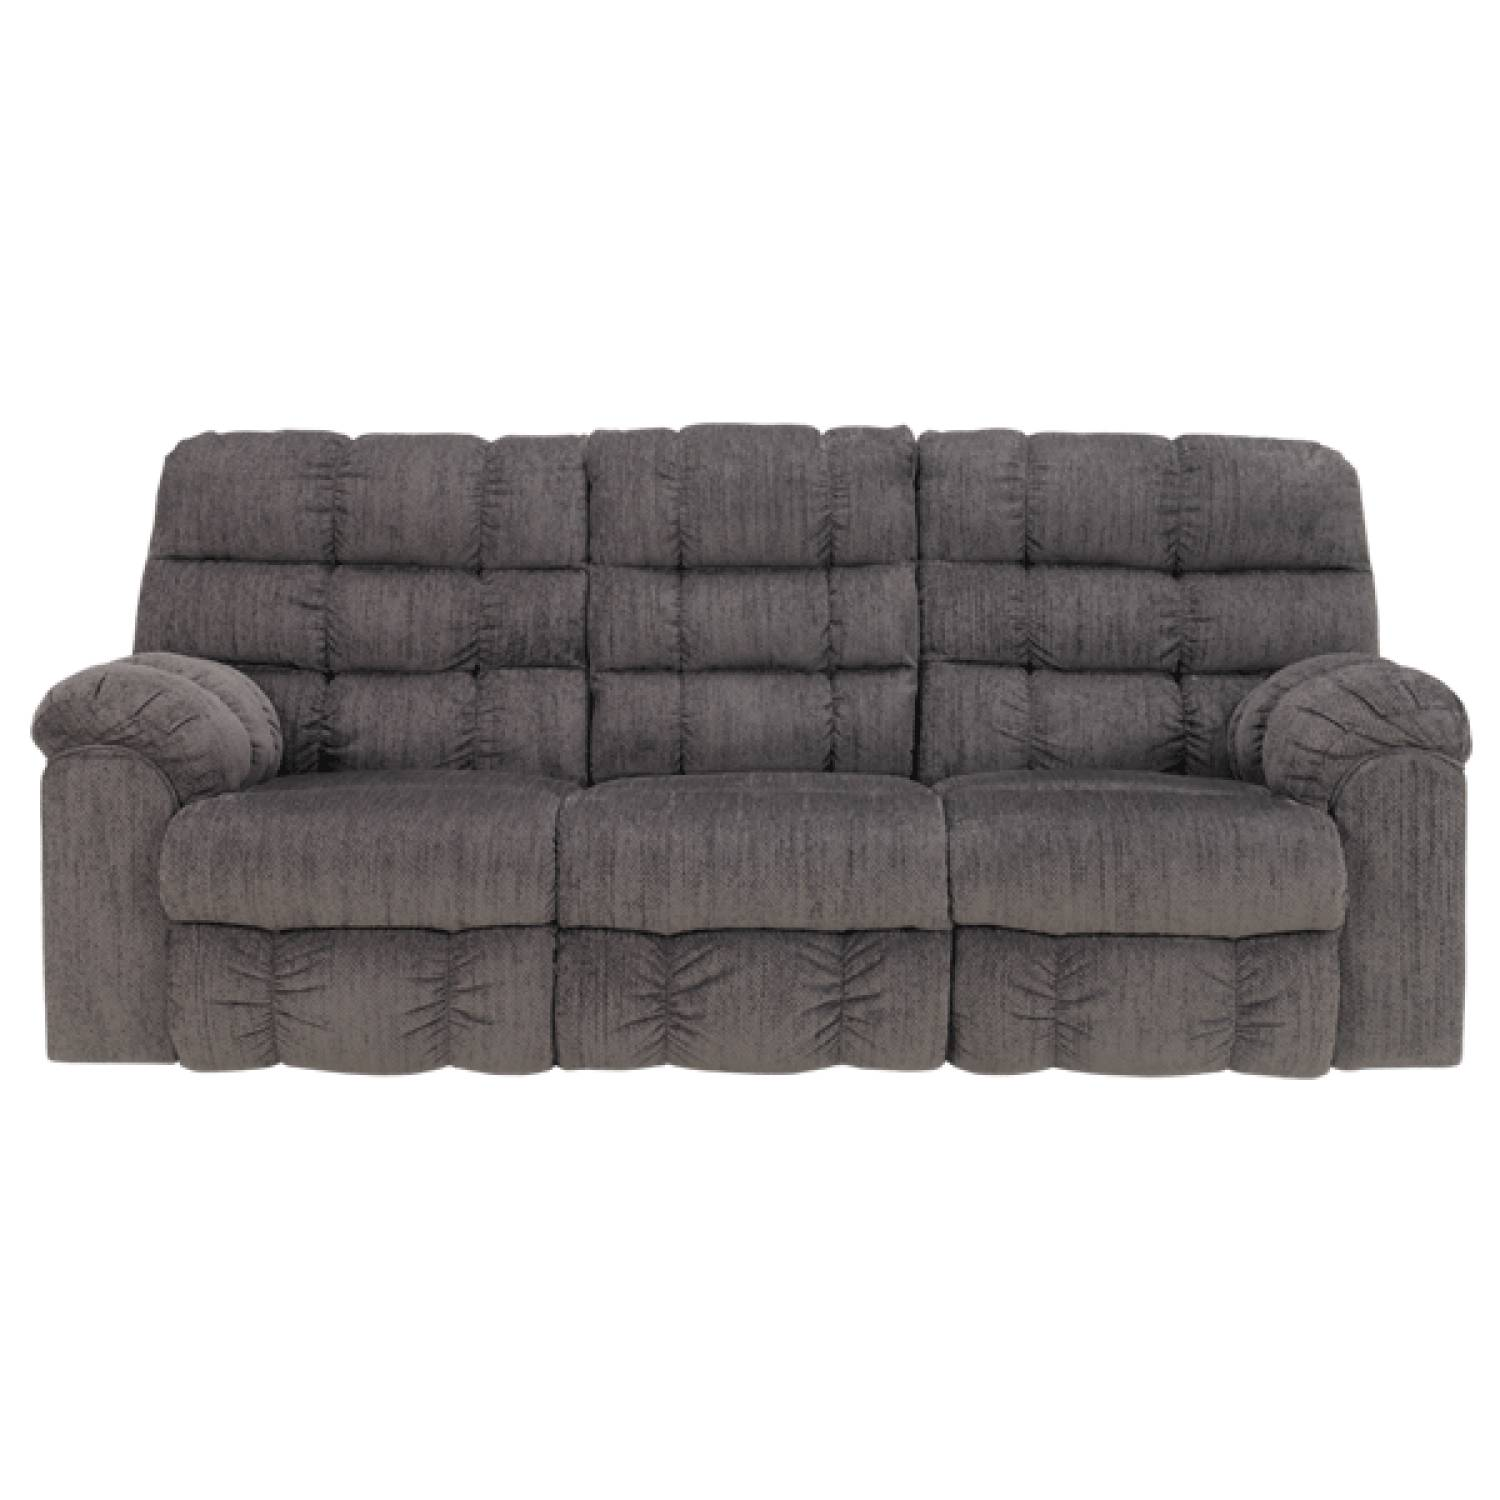 Acieona slate rec sofa w drop down table for Sectional sofa with drop down table